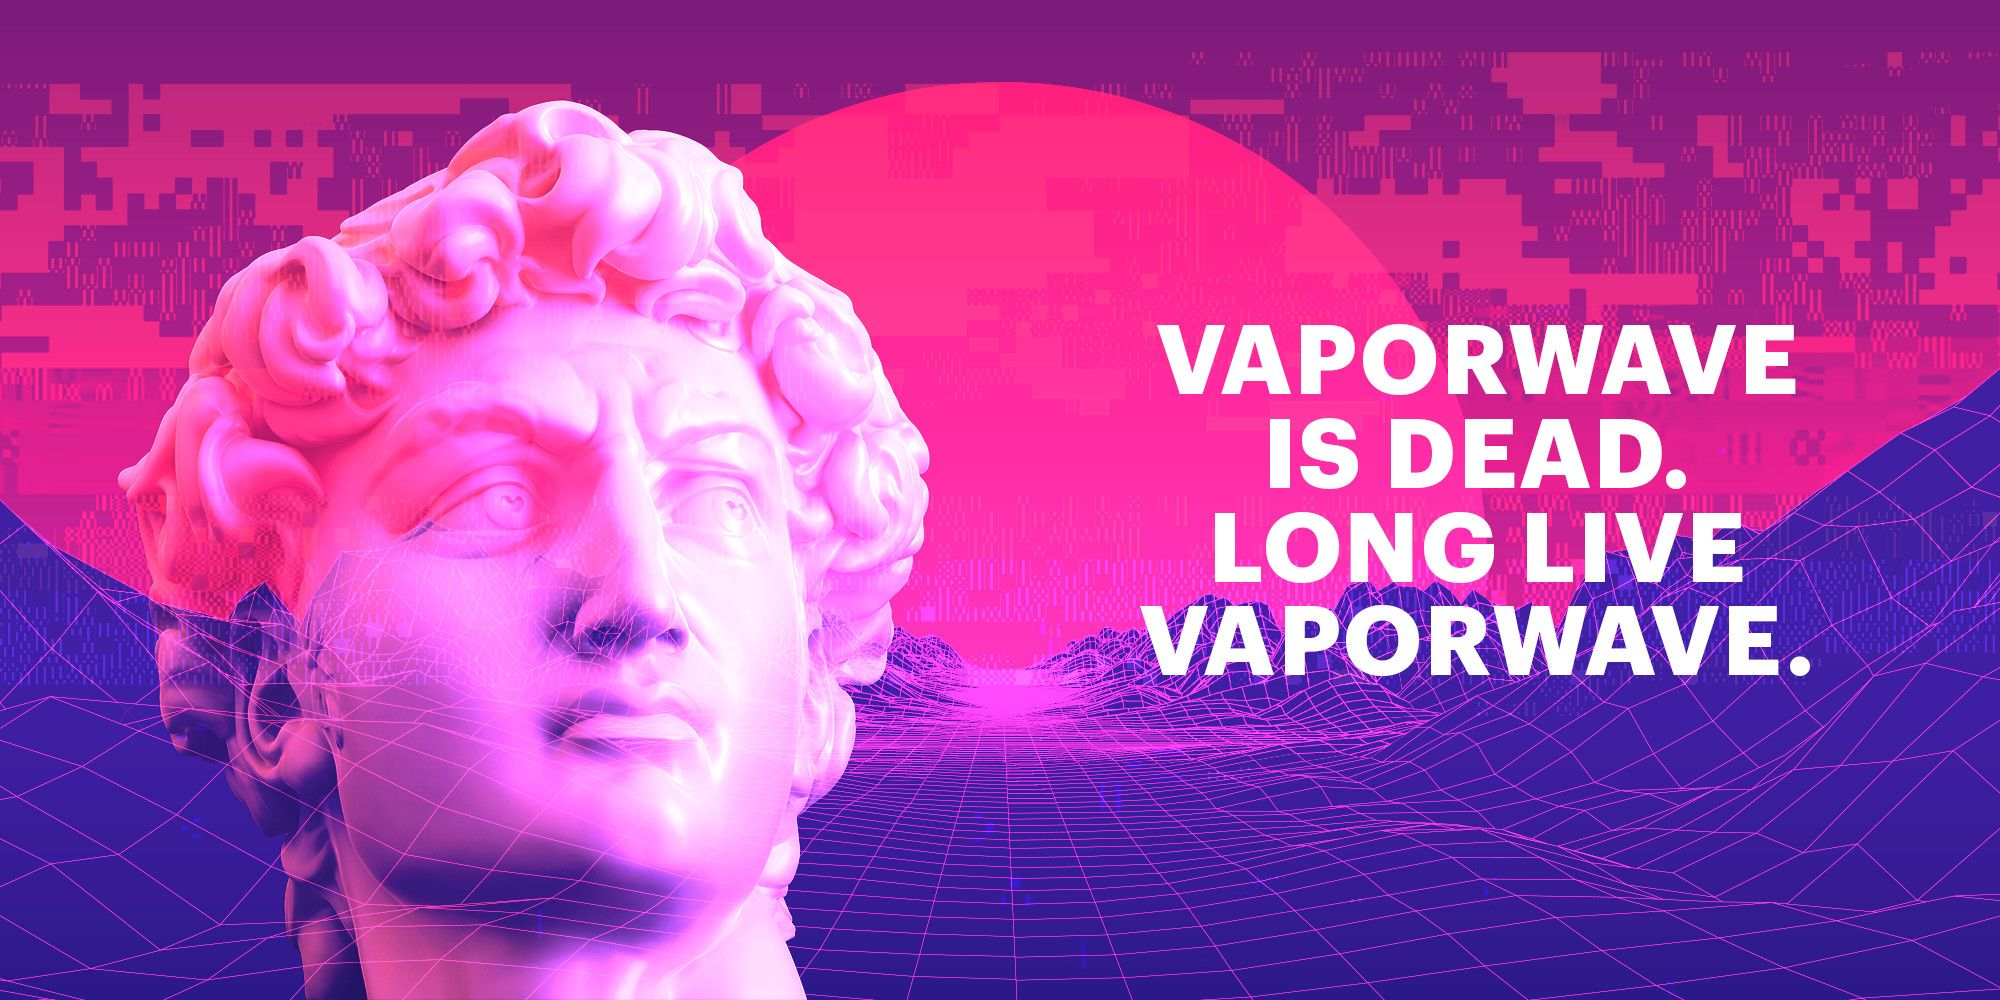 What Happened To Vaporwave